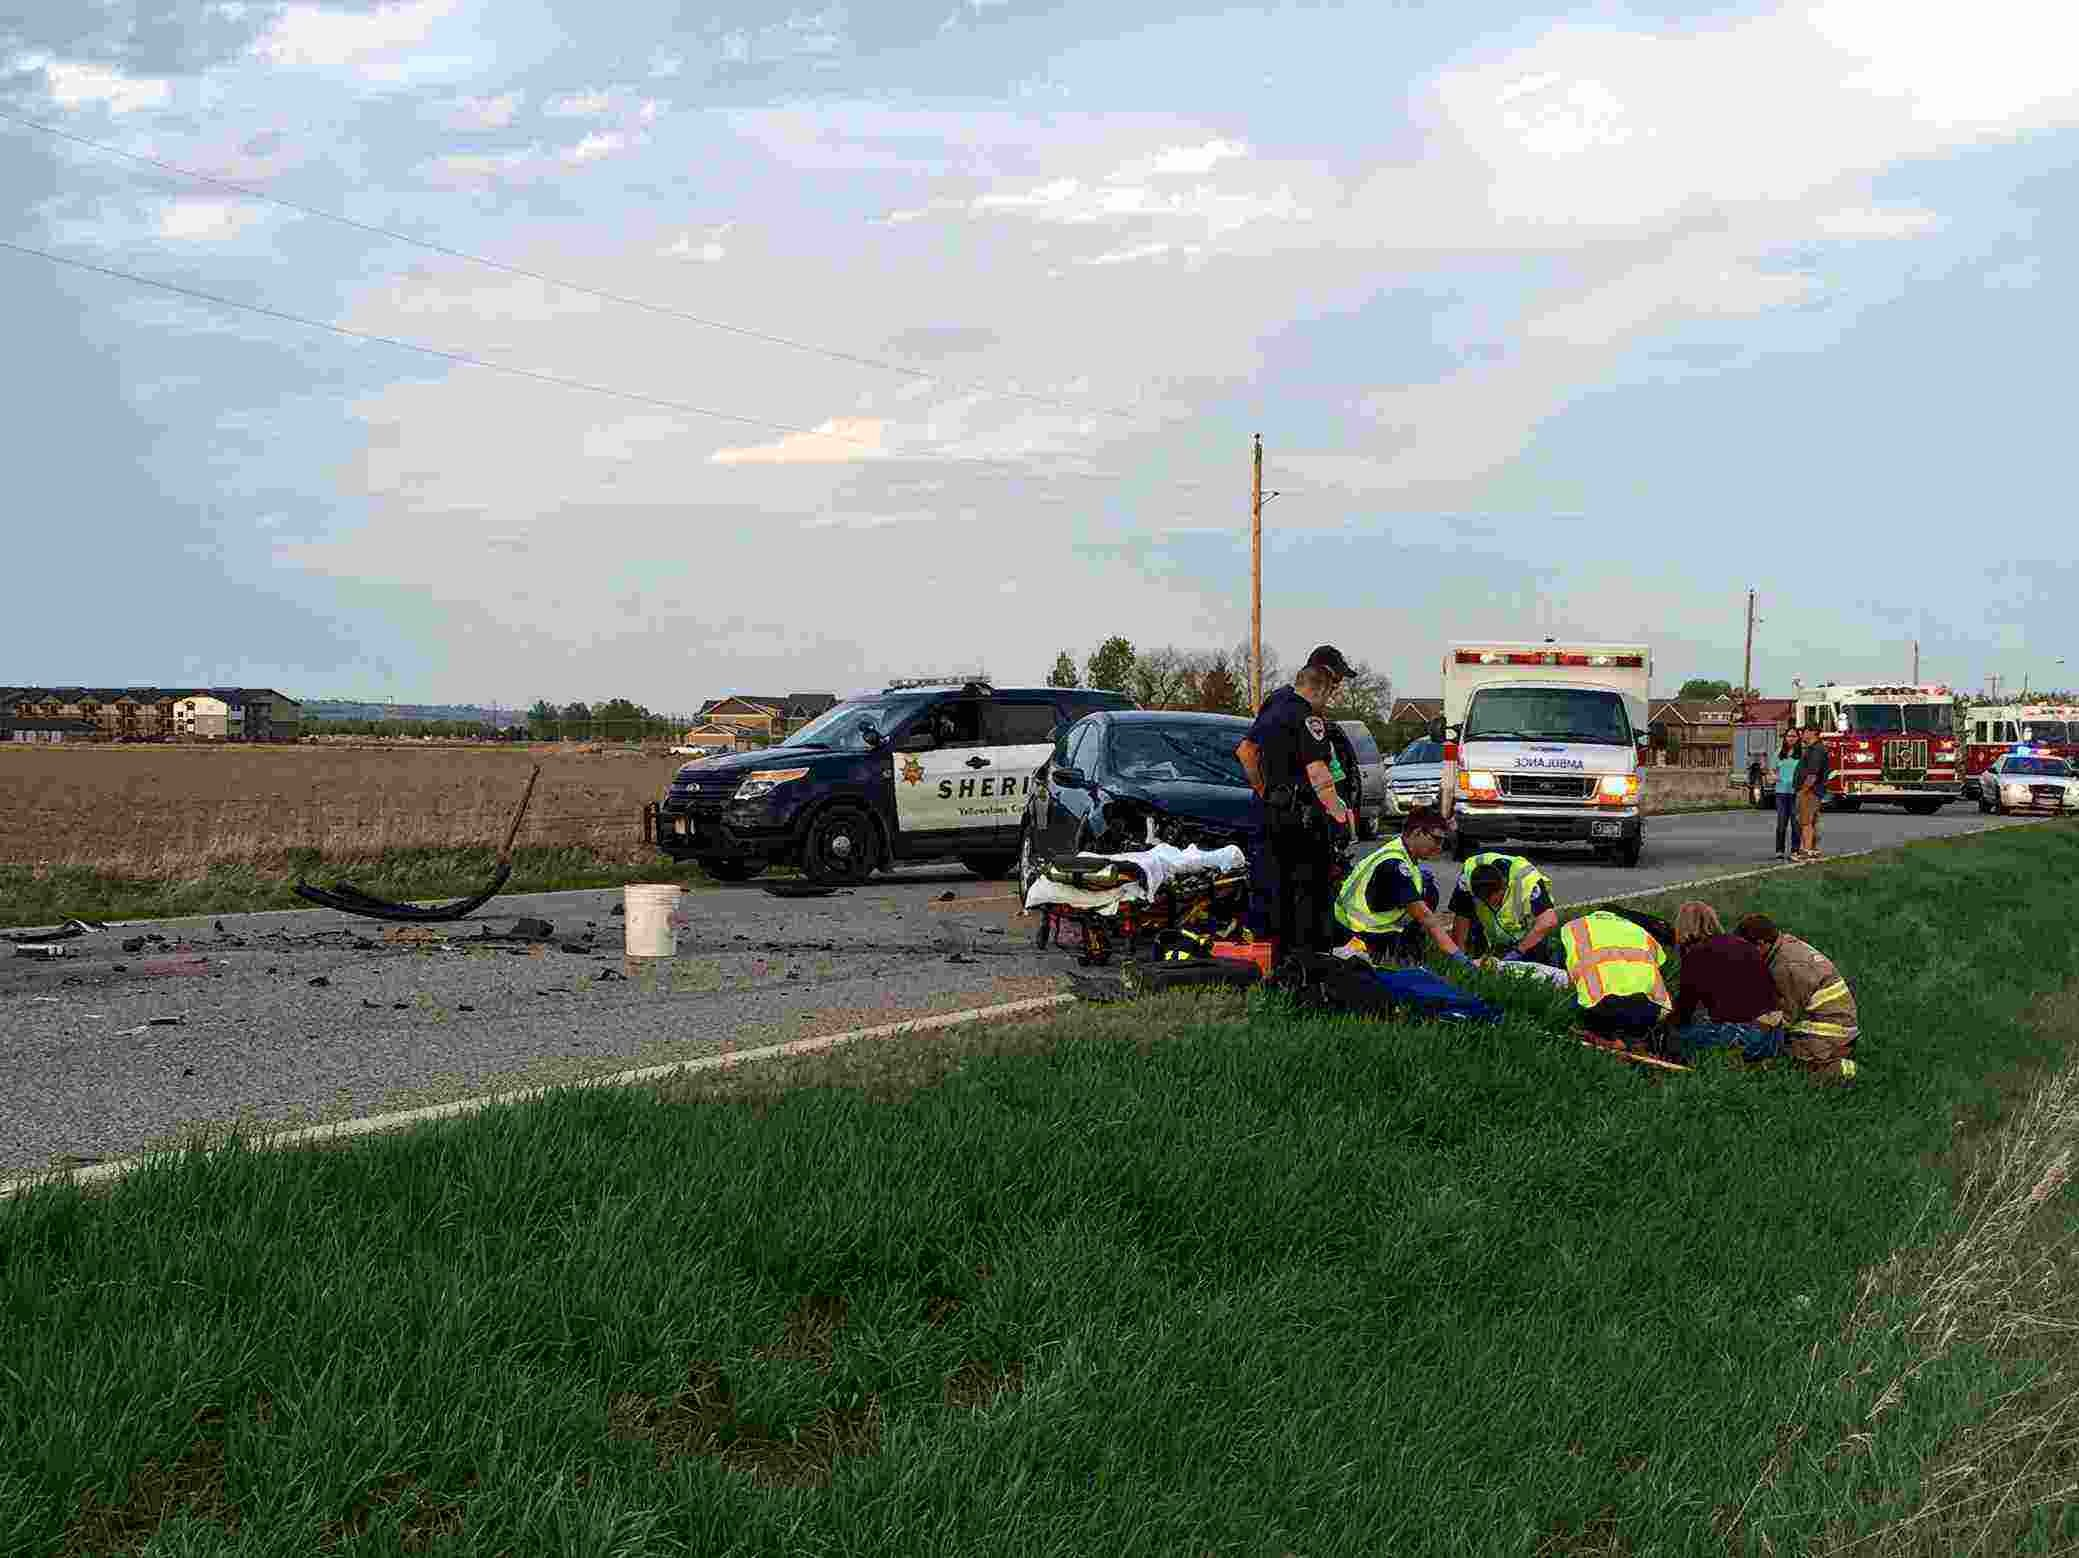 Crews worked on the driver of the vehicle before transporting him to the hospital.